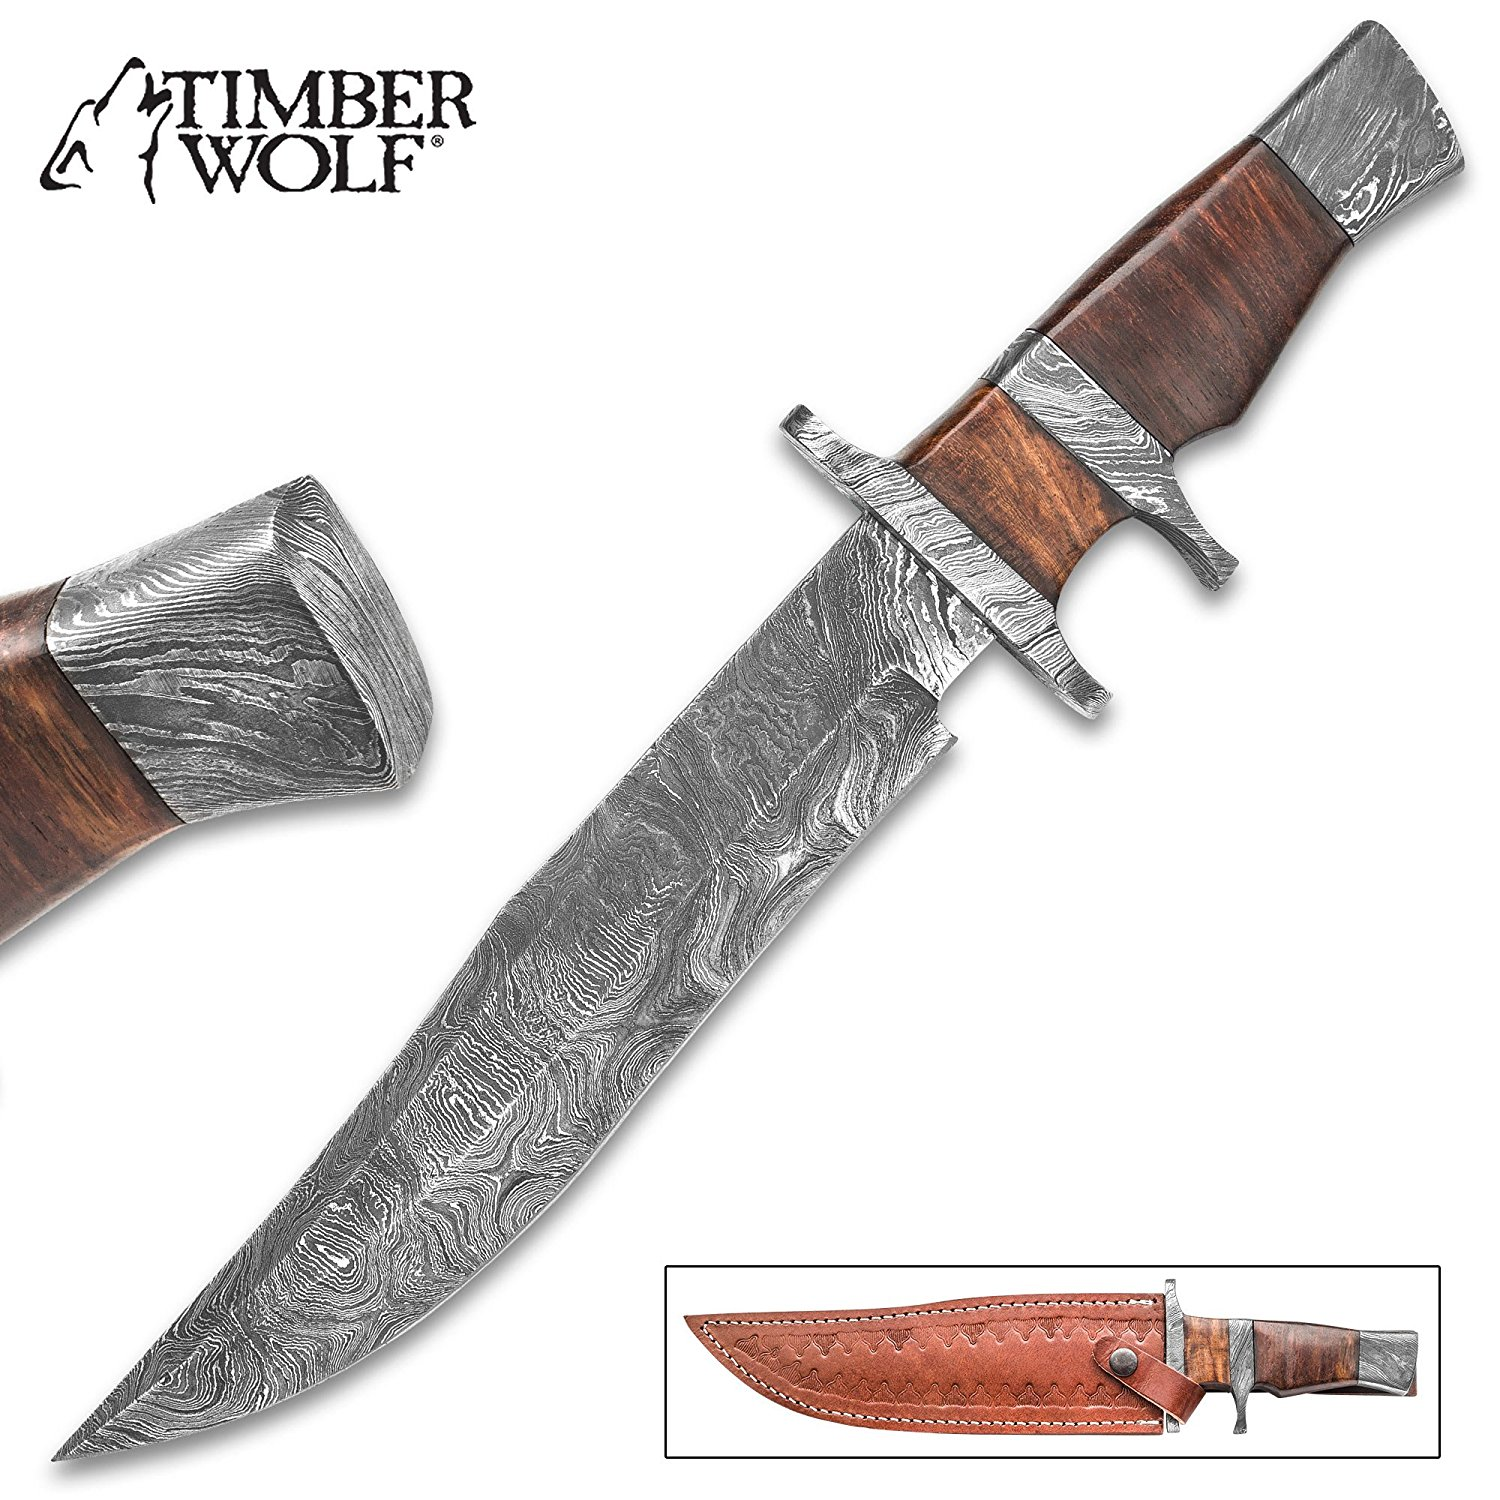 Timber Wolf Ascension Bowie/Fixed Blade Knife - Hand Forged Damascus Steel - Sub Hilt; Heartwood - Genuine Leather Sheath - Collecting Collection Display Outdoors Hunting Camping - 14""